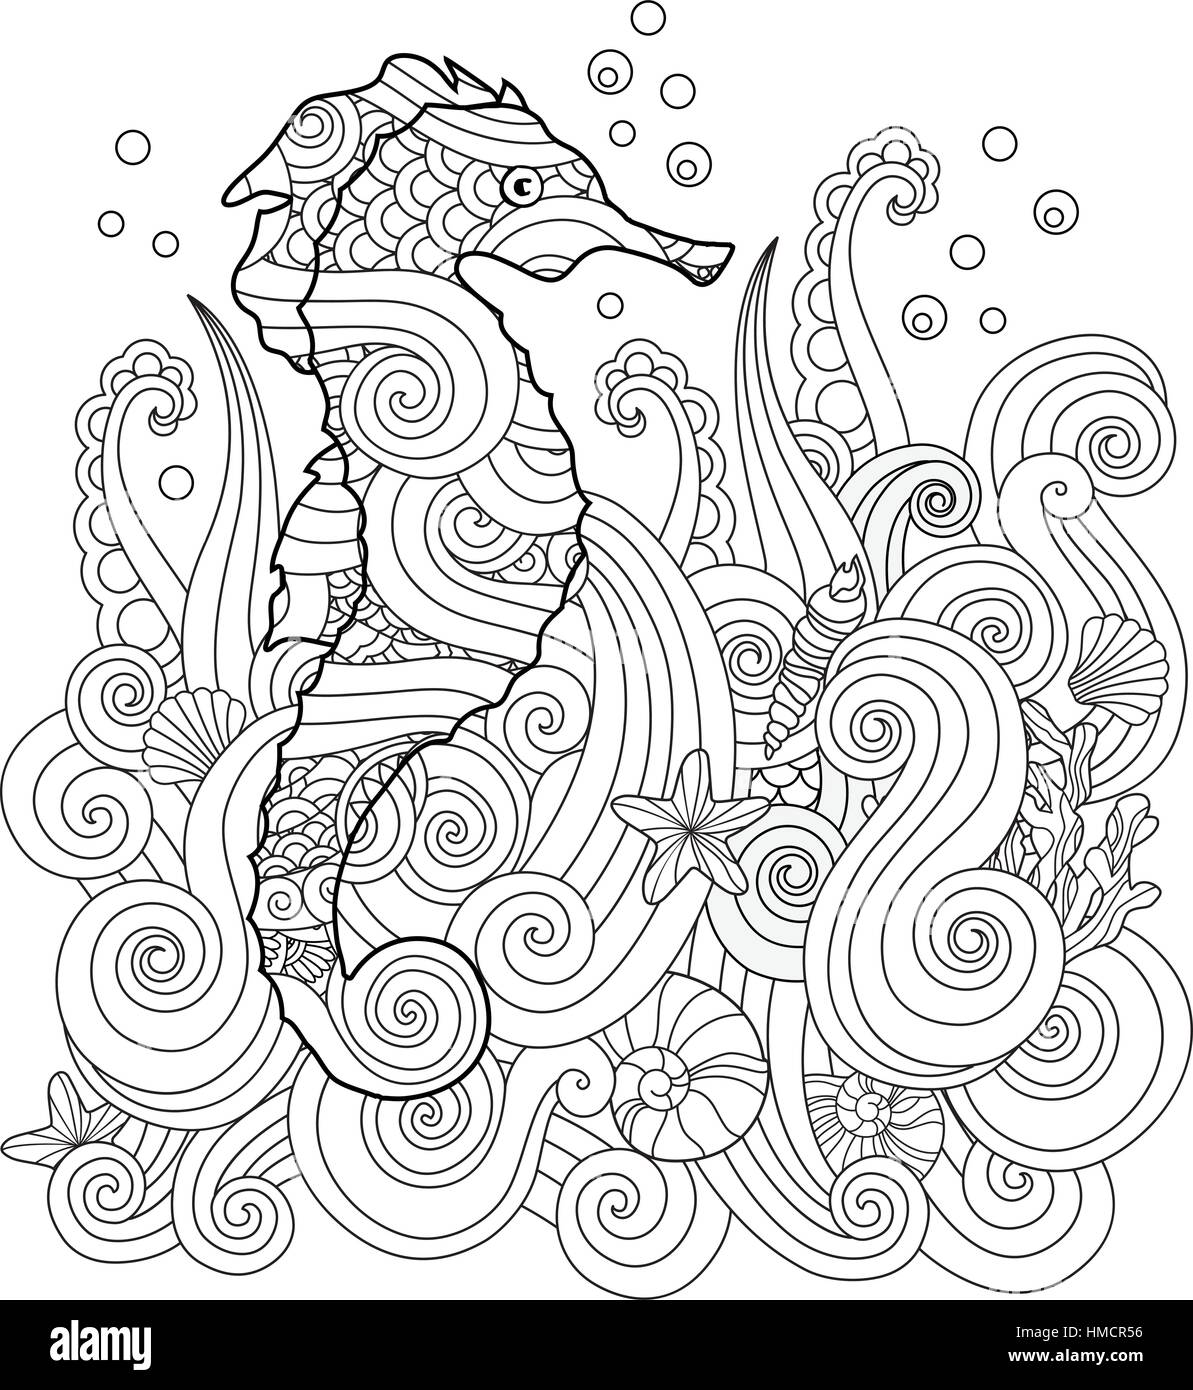 Hand Drawn Sketch Of Seahorse Under The Sea In Zentangle Inspired Style